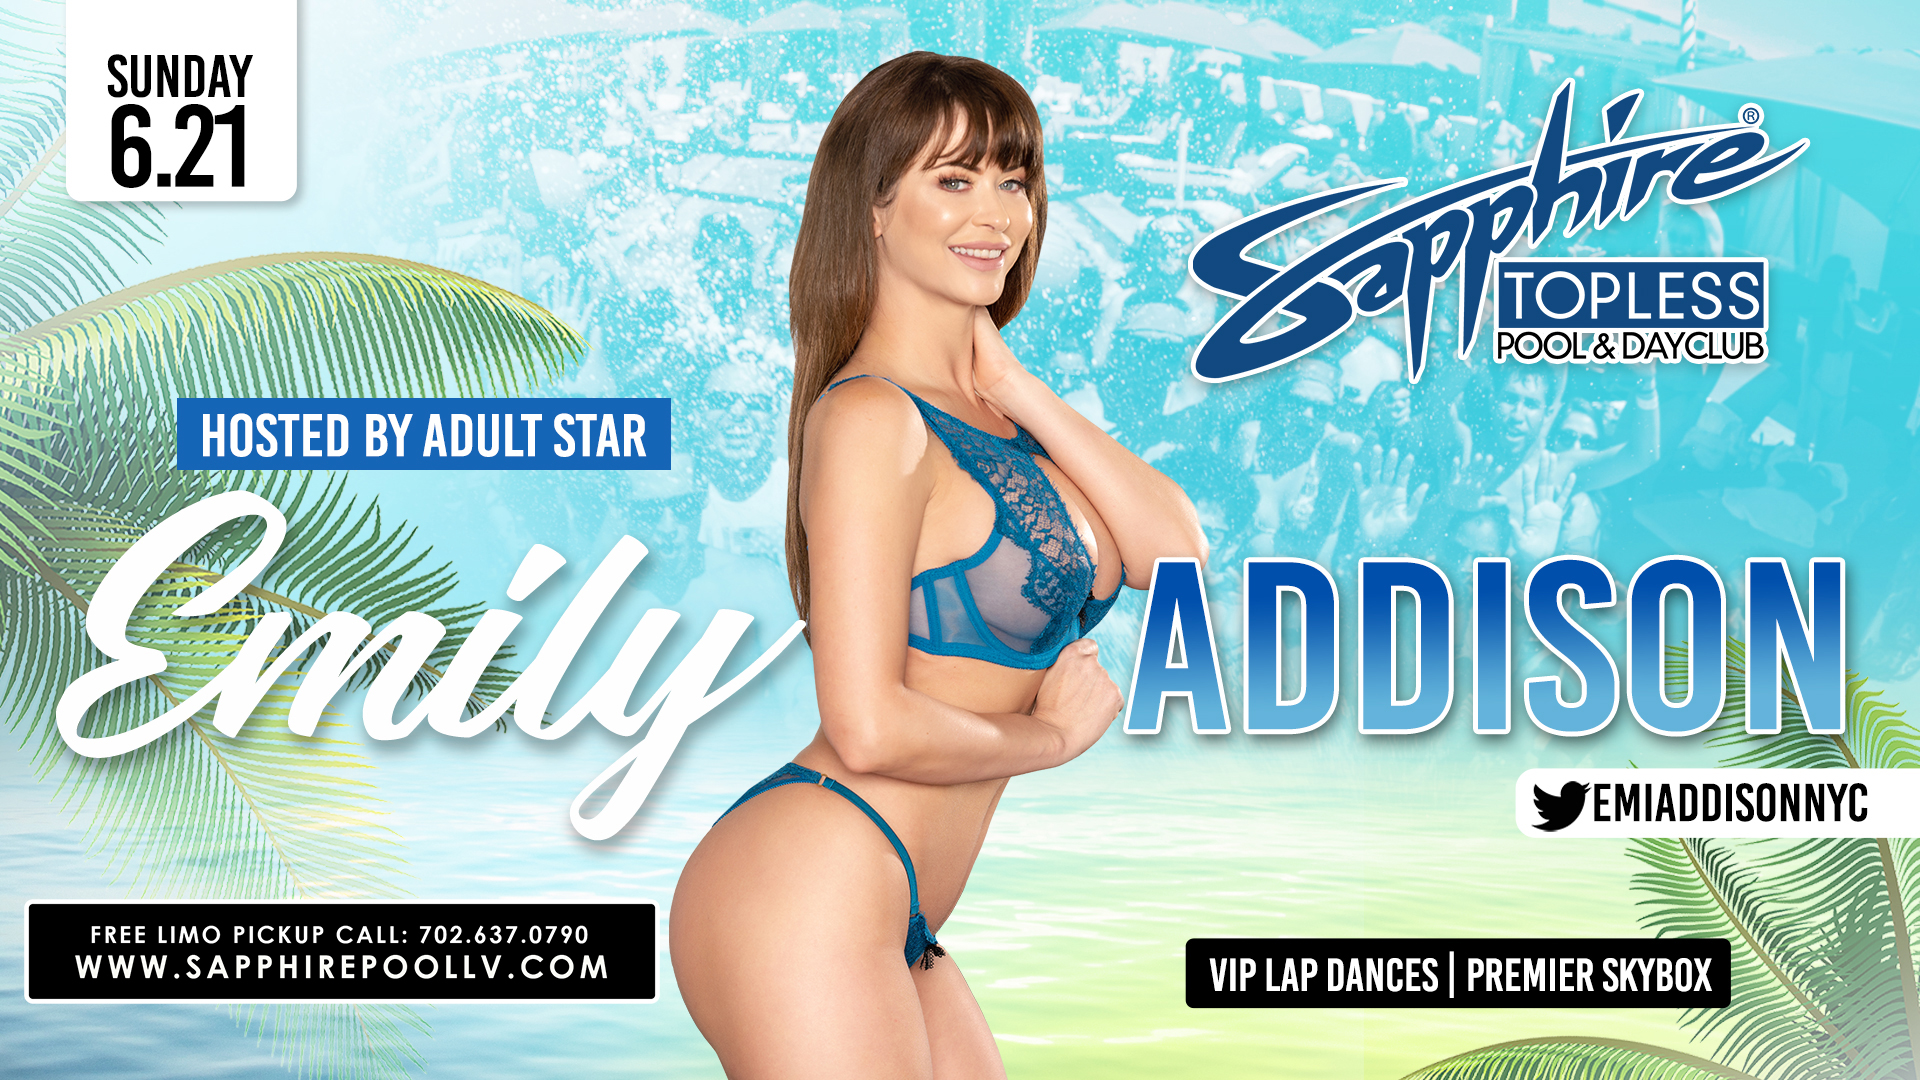 Adult Star Emily Addison Hosts Sapphire Topless Pool and Dayclub Sunday, June 21st